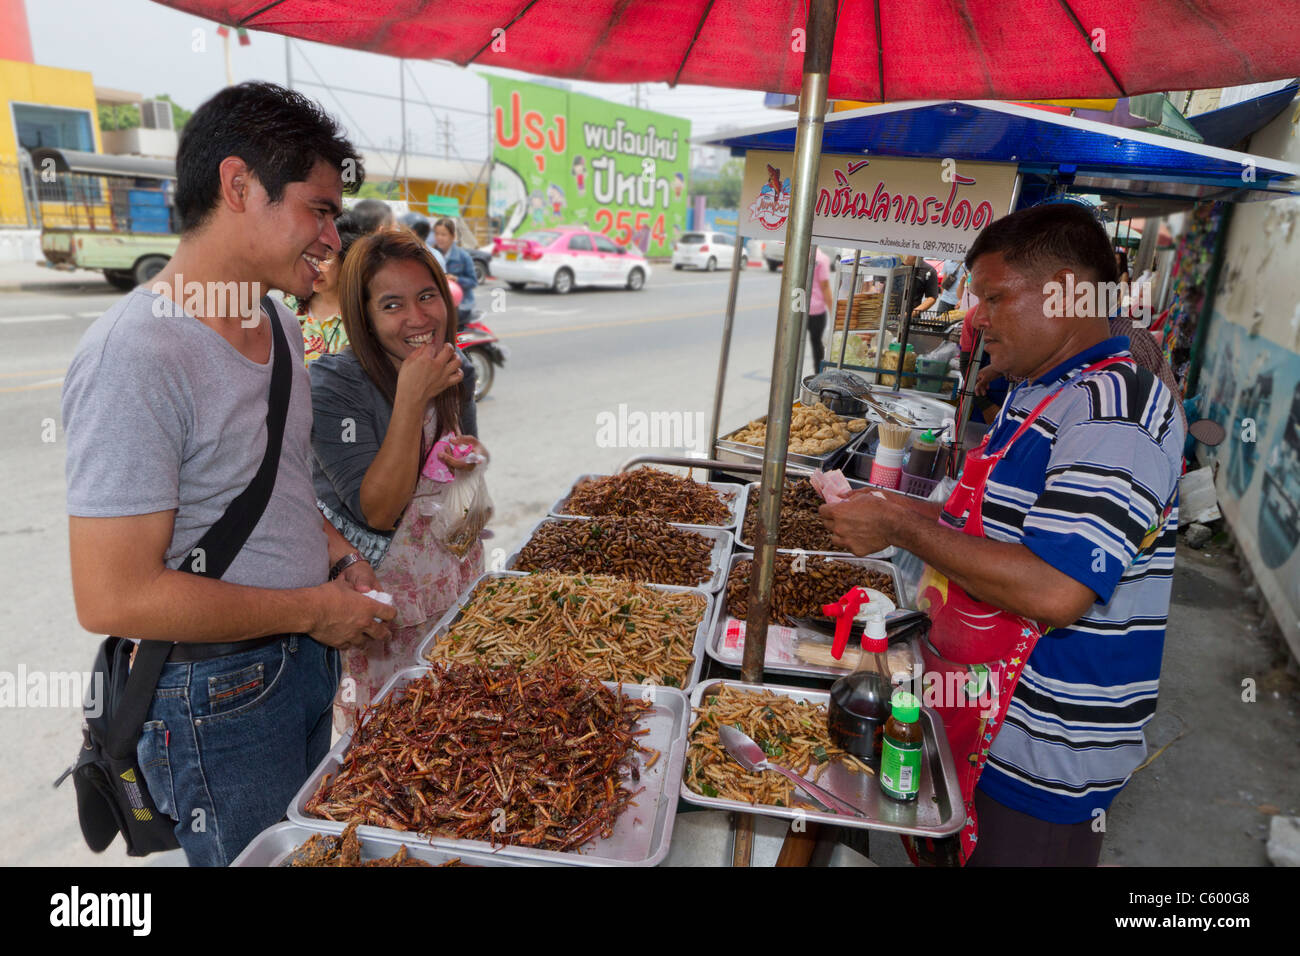 Deep fried grashoppers at Chatuchak market stall in Bangkok, Thailand - Stock Image